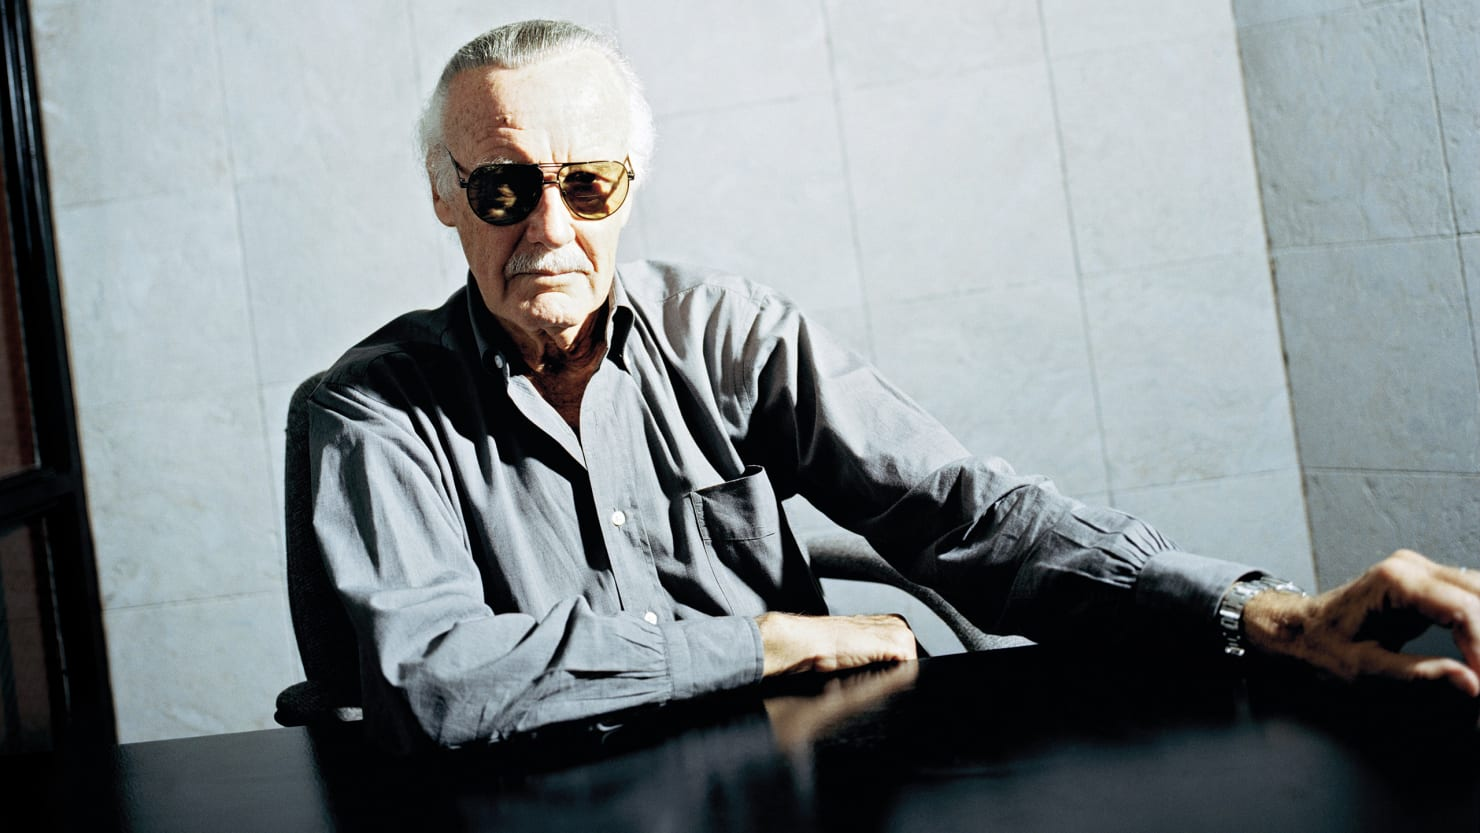 Stan Lee Breaks His Silence: Those I Trusted Betrayed Me